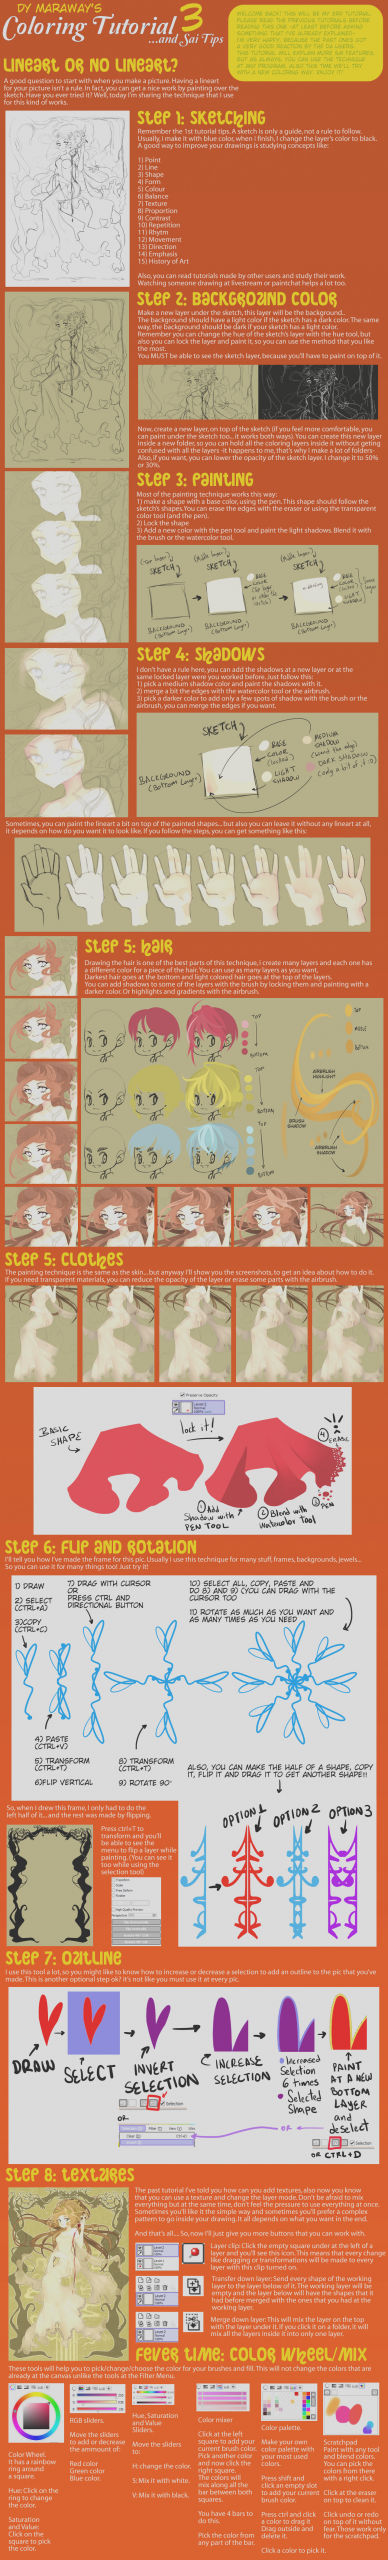 tut sai coloring tutorial and sai tips by